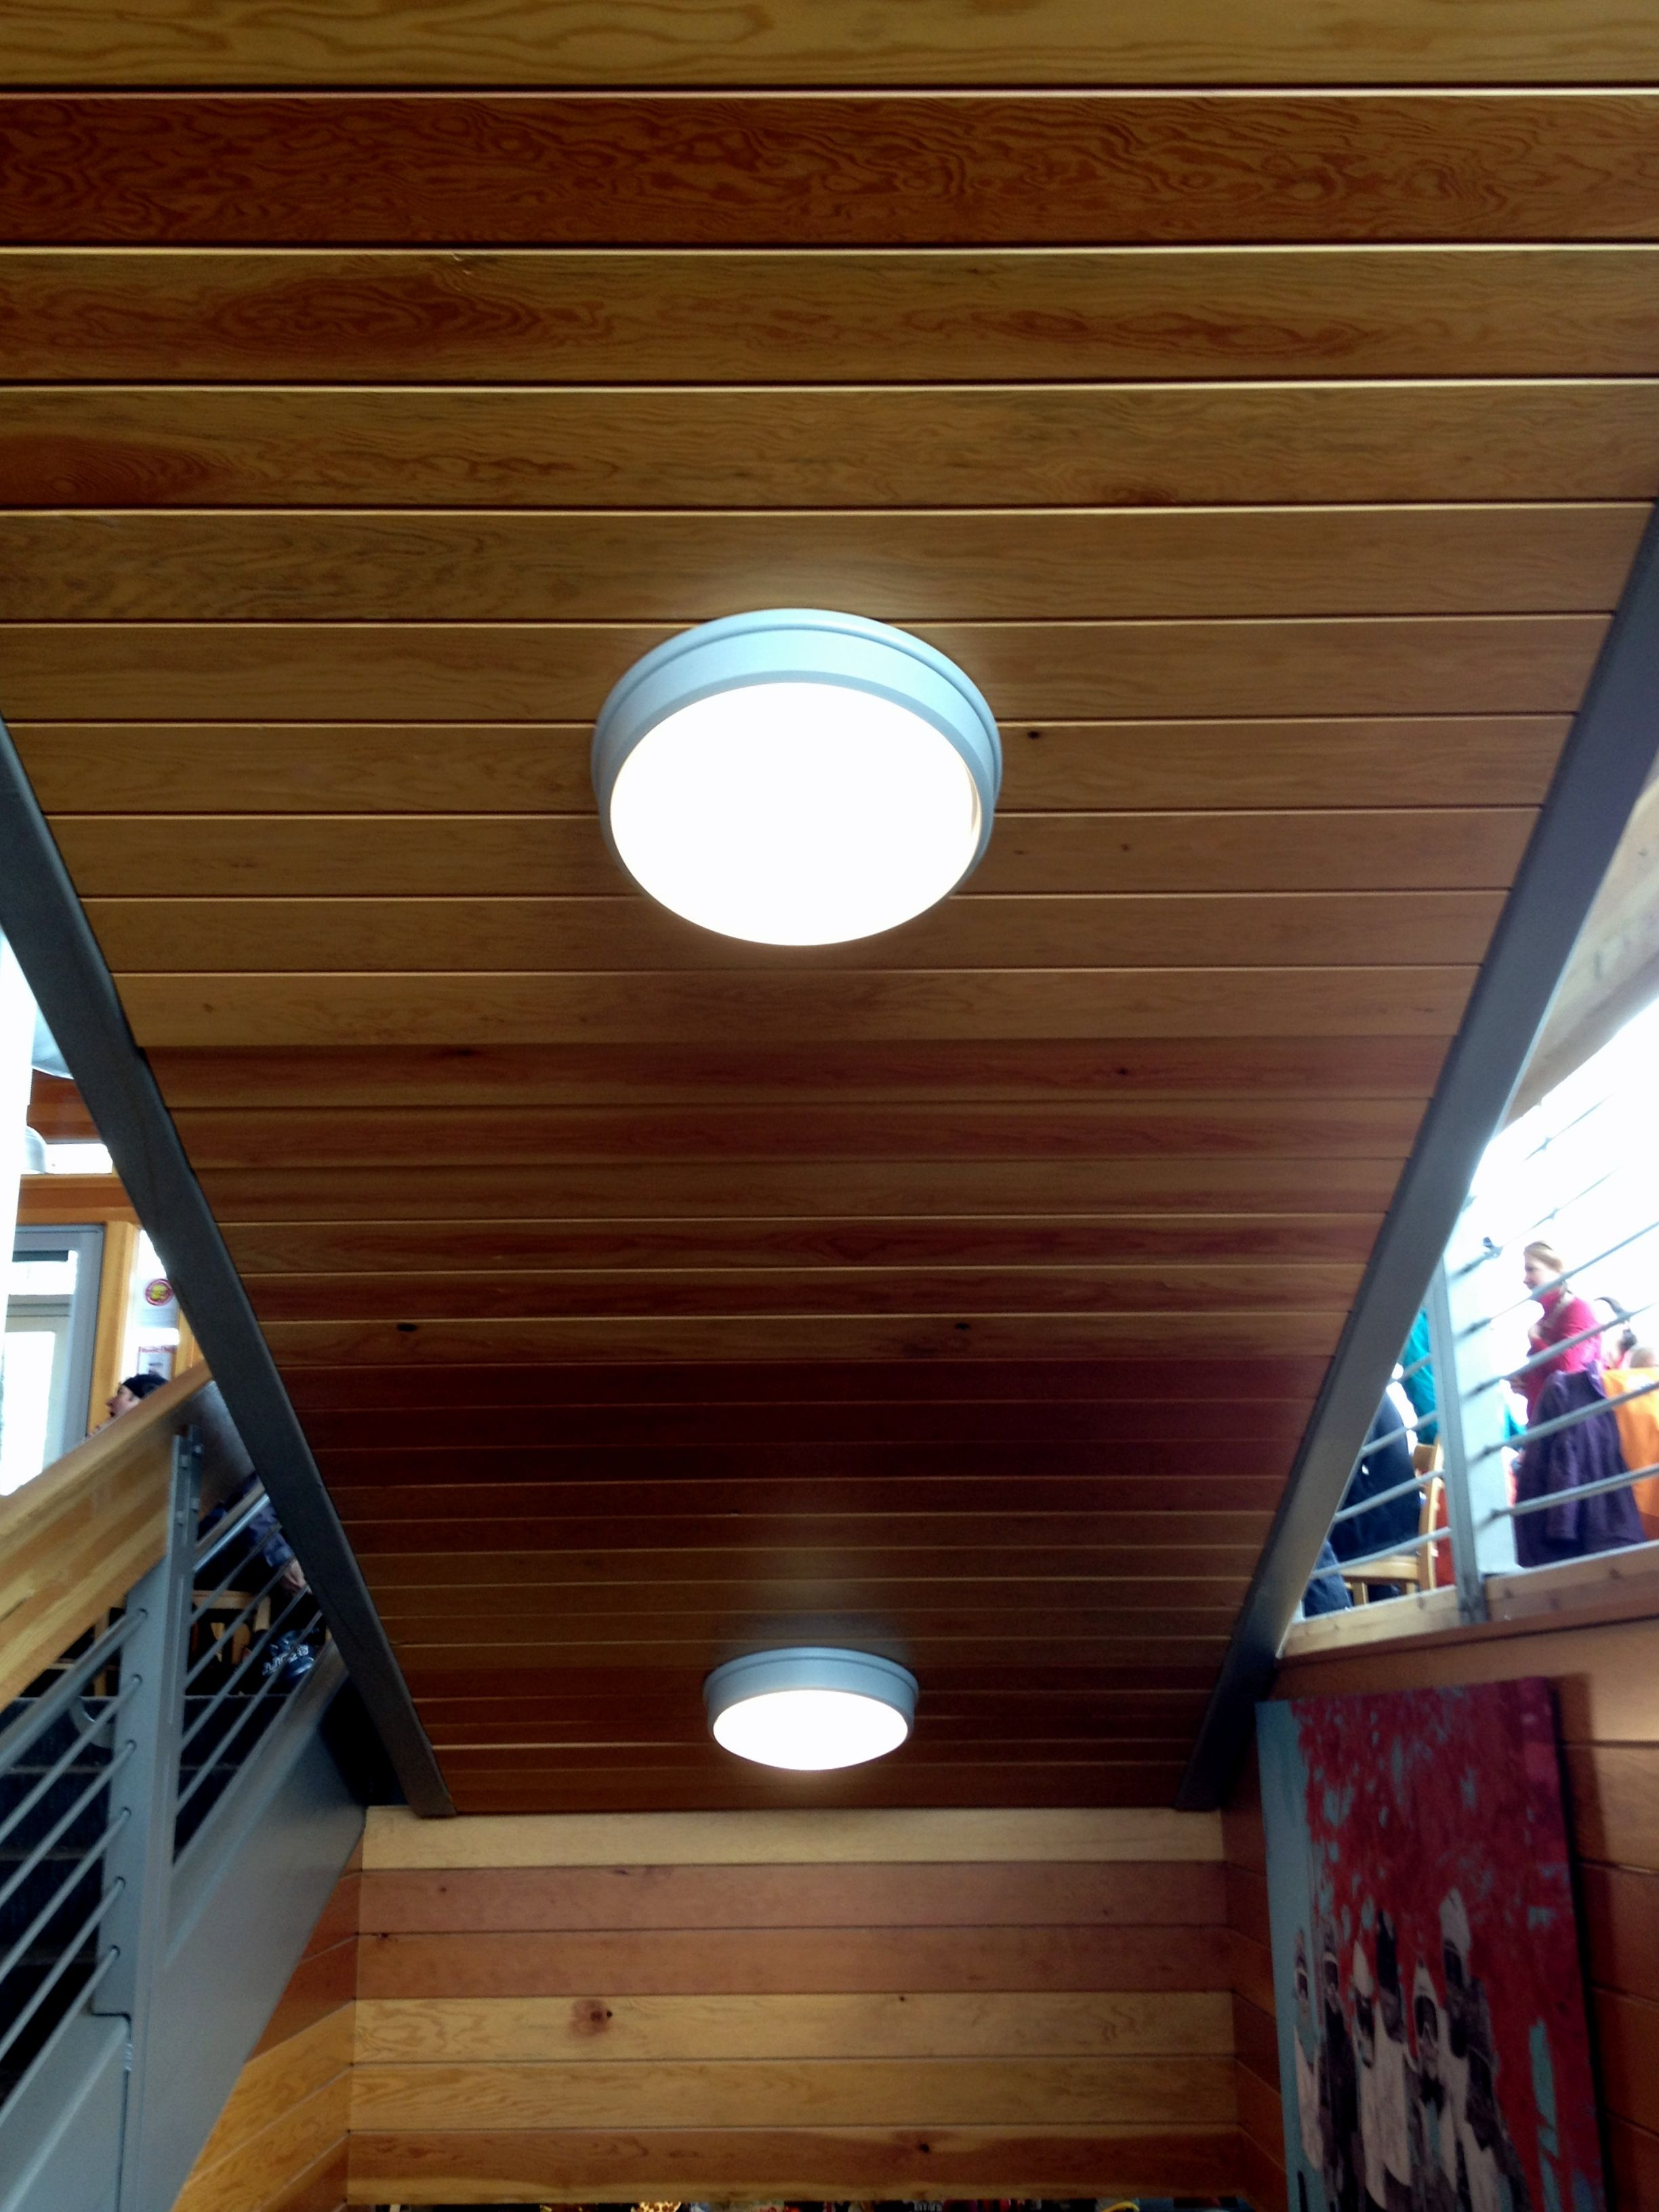 Douglas Fir 1 X 6 Tongue And Groove V Joint Paneling Found At Watson Shelter At Alta Ski Resort Ut Wall Paneling Exterior Wood Ceiling Lights